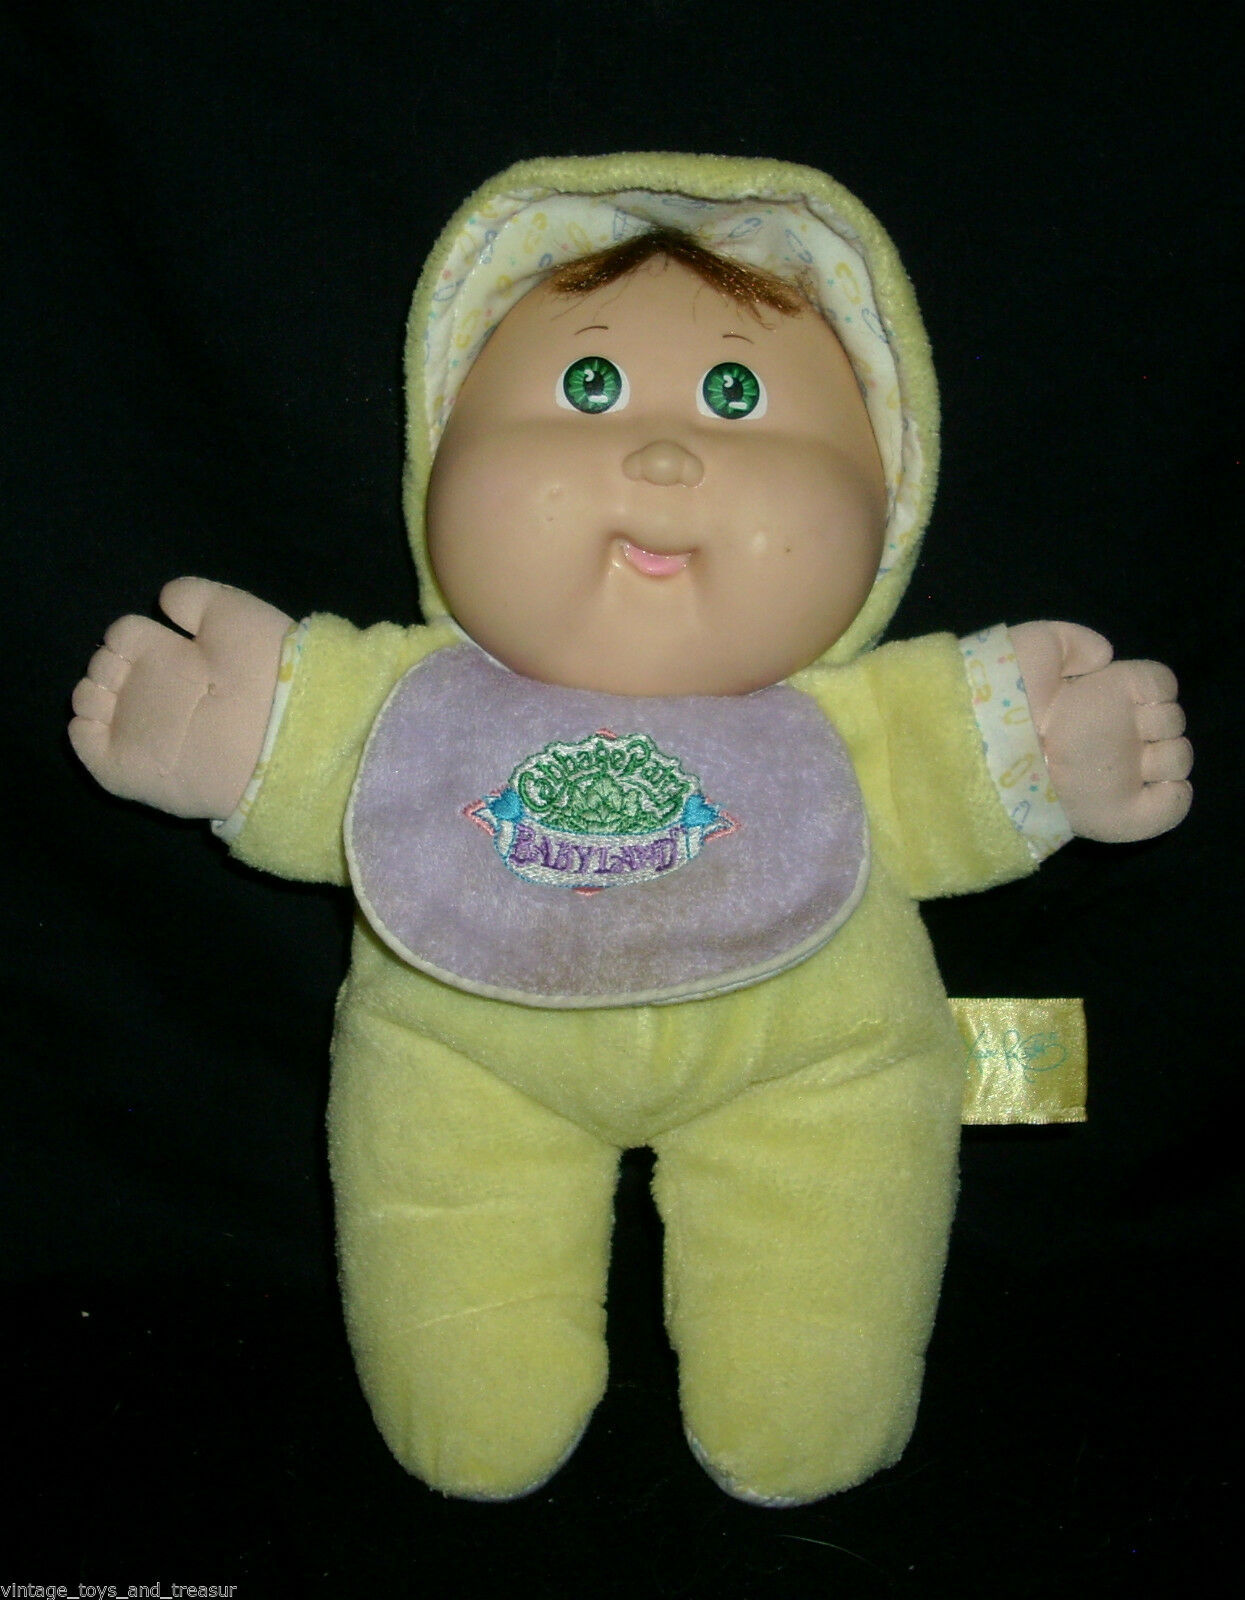 "Primary image for 12"" VINTAGE 1983 CABBAGE PATCH KIDS BABYLAND SQUEAKER DOLL STUFFED ANIMAL PLUSH"